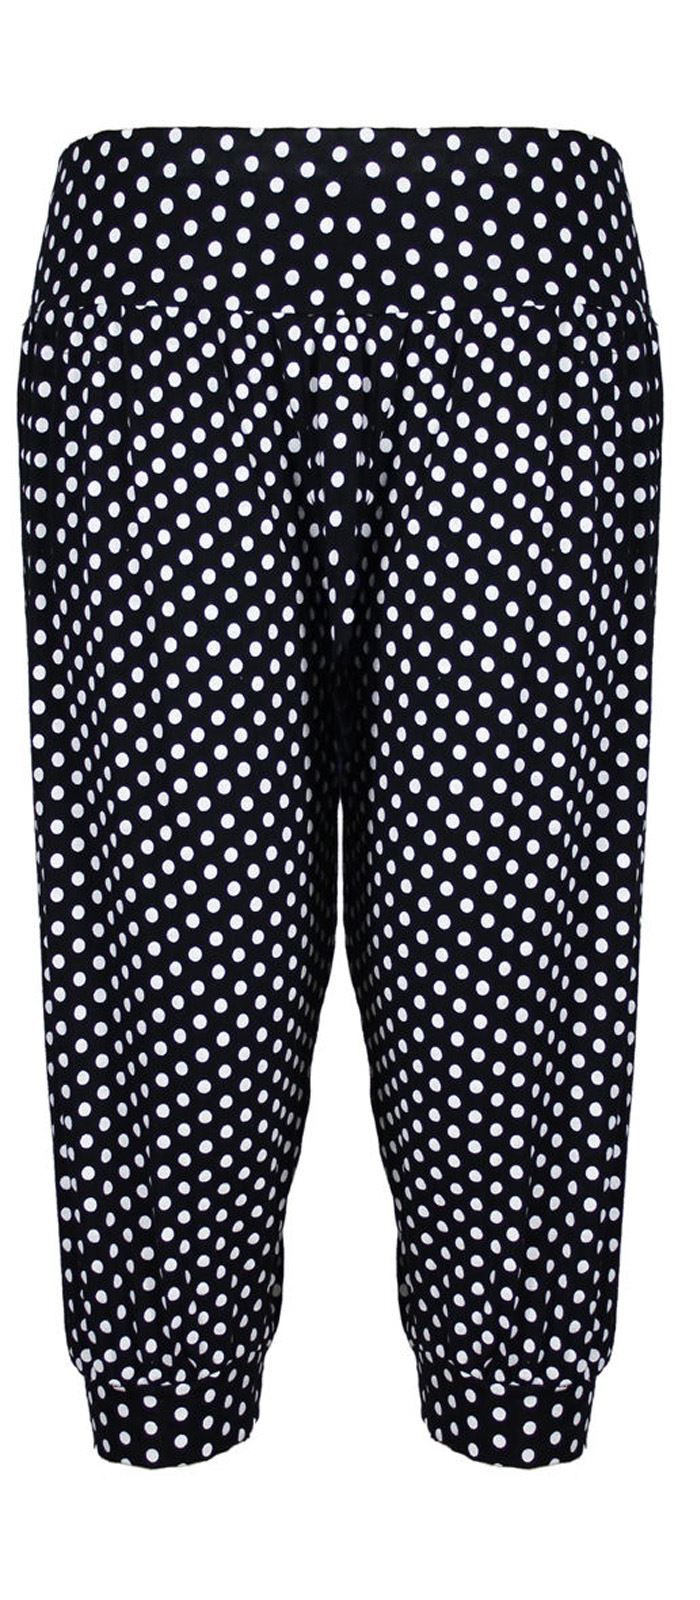 new womens plus size polka dot printed leggings harems. Black Bedroom Furniture Sets. Home Design Ideas